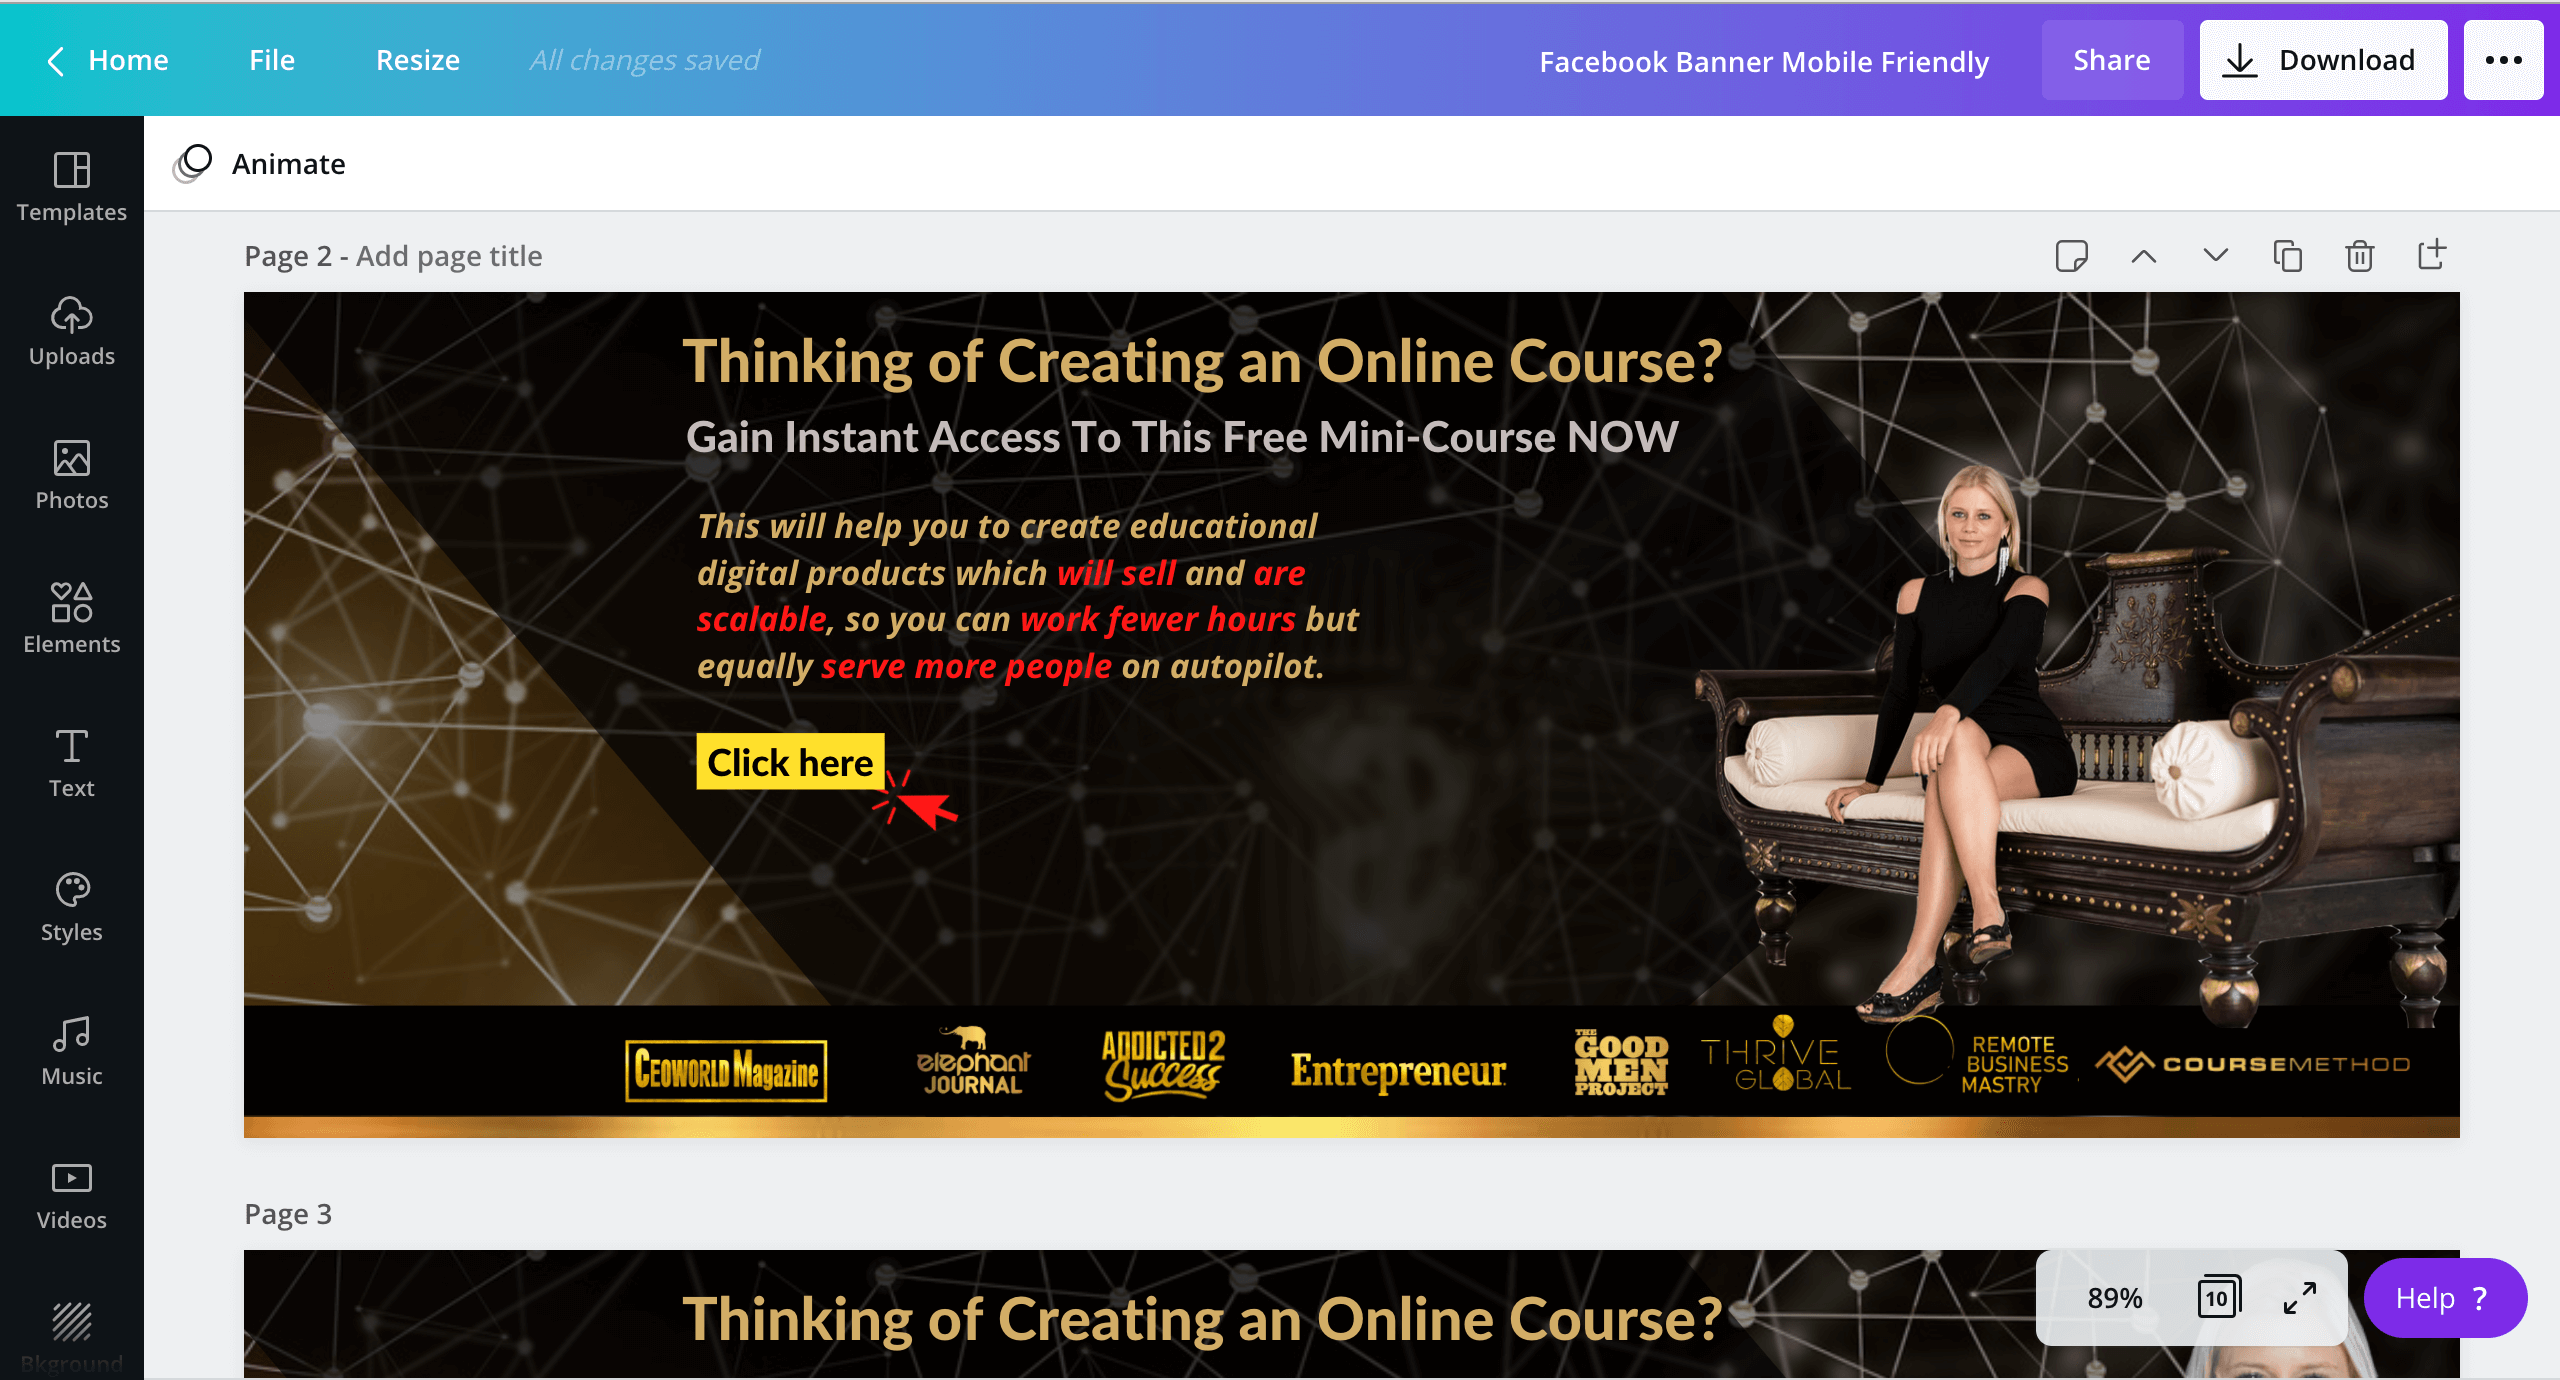 How to create an online course for free12